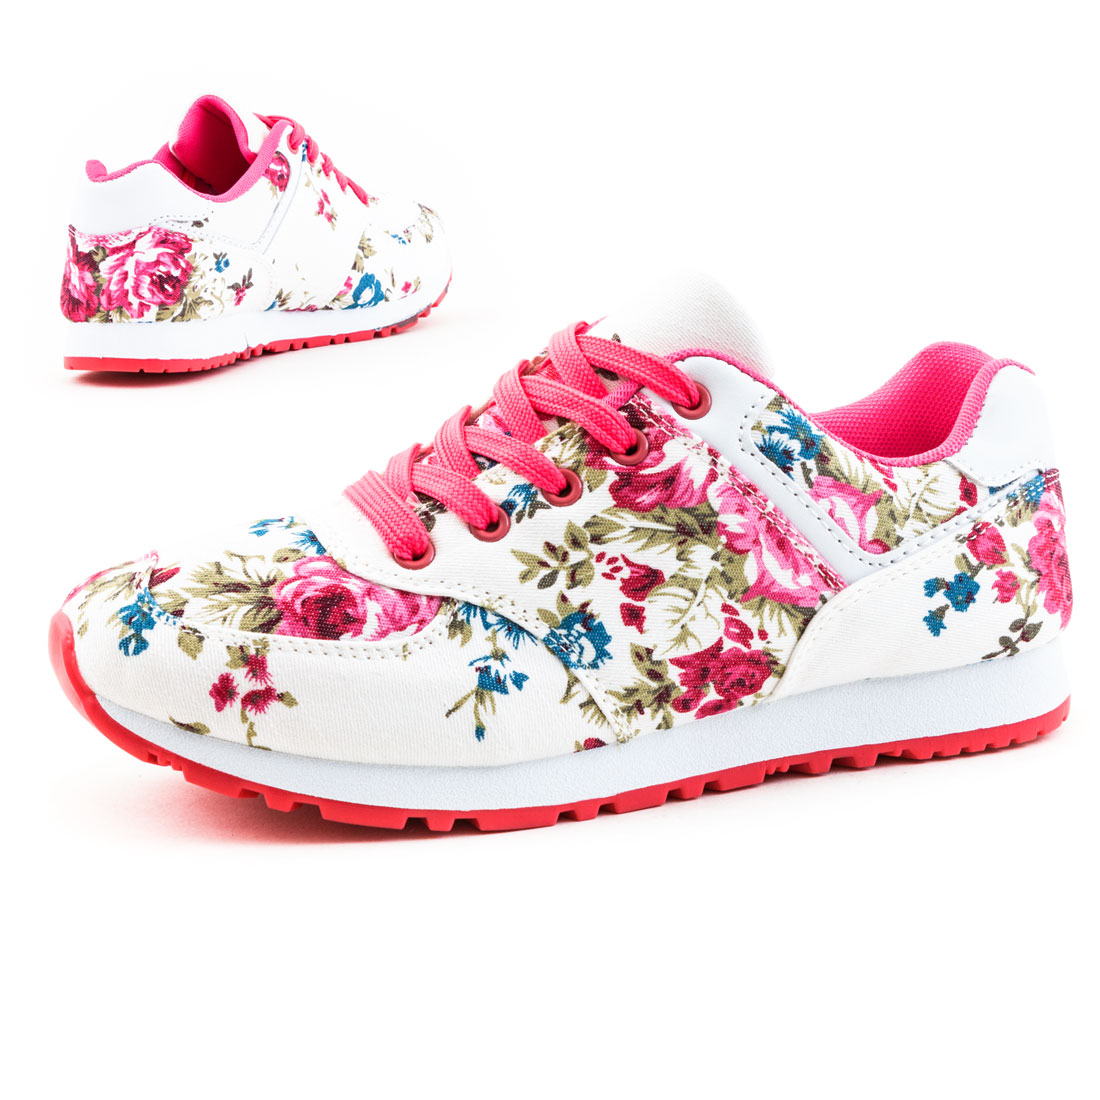 neu damen sportliche sneaker mit blumen print schuhe wow gr 36 37 38 39 40 41 ebay. Black Bedroom Furniture Sets. Home Design Ideas